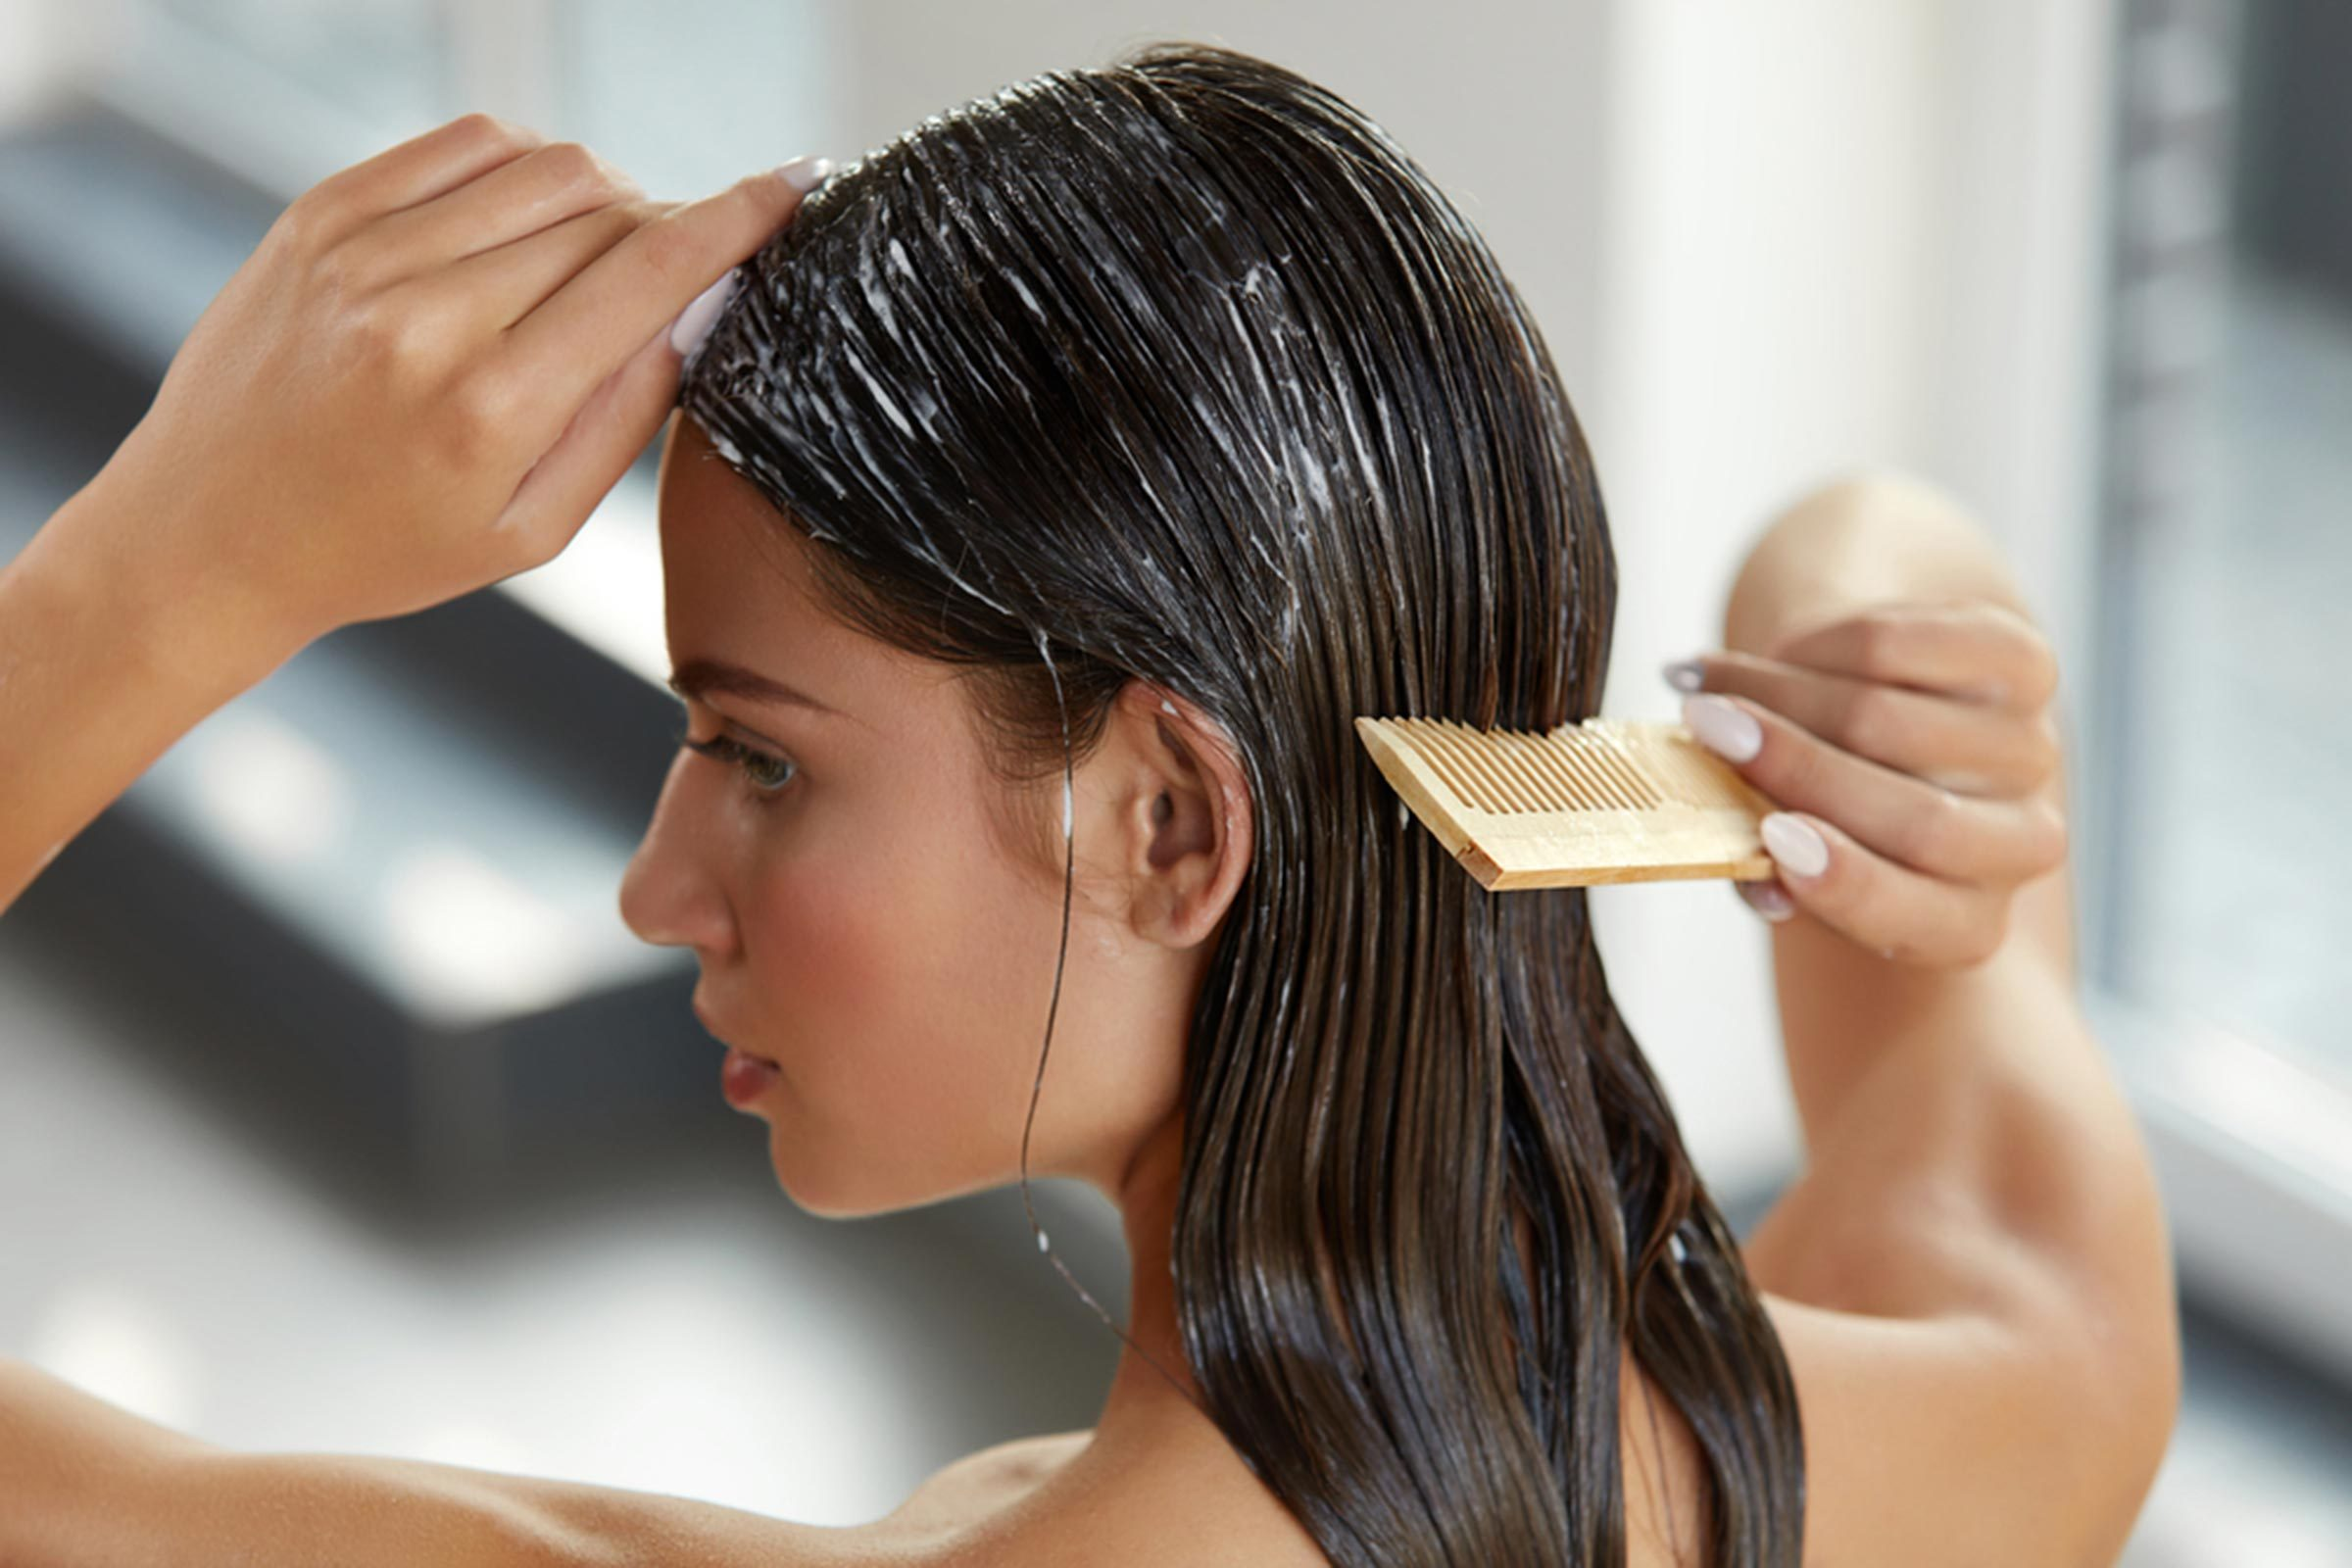 Home remedies for sun damage to hair